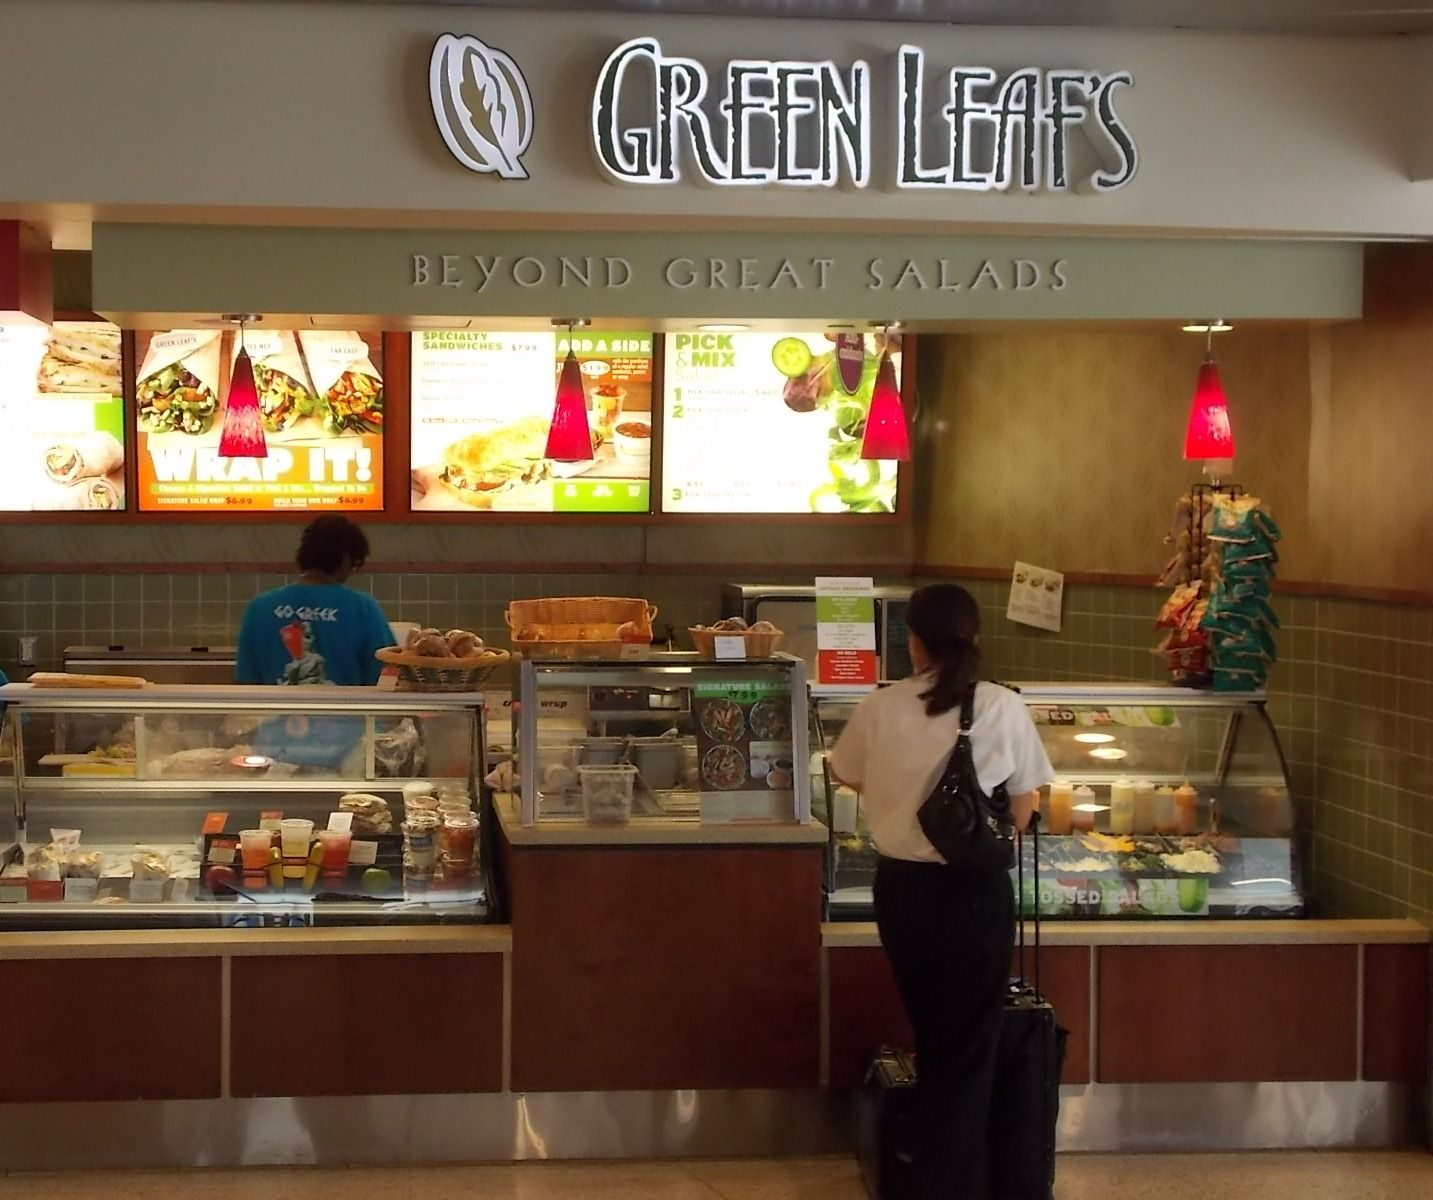 Green leafs beyond great salads in concourse c